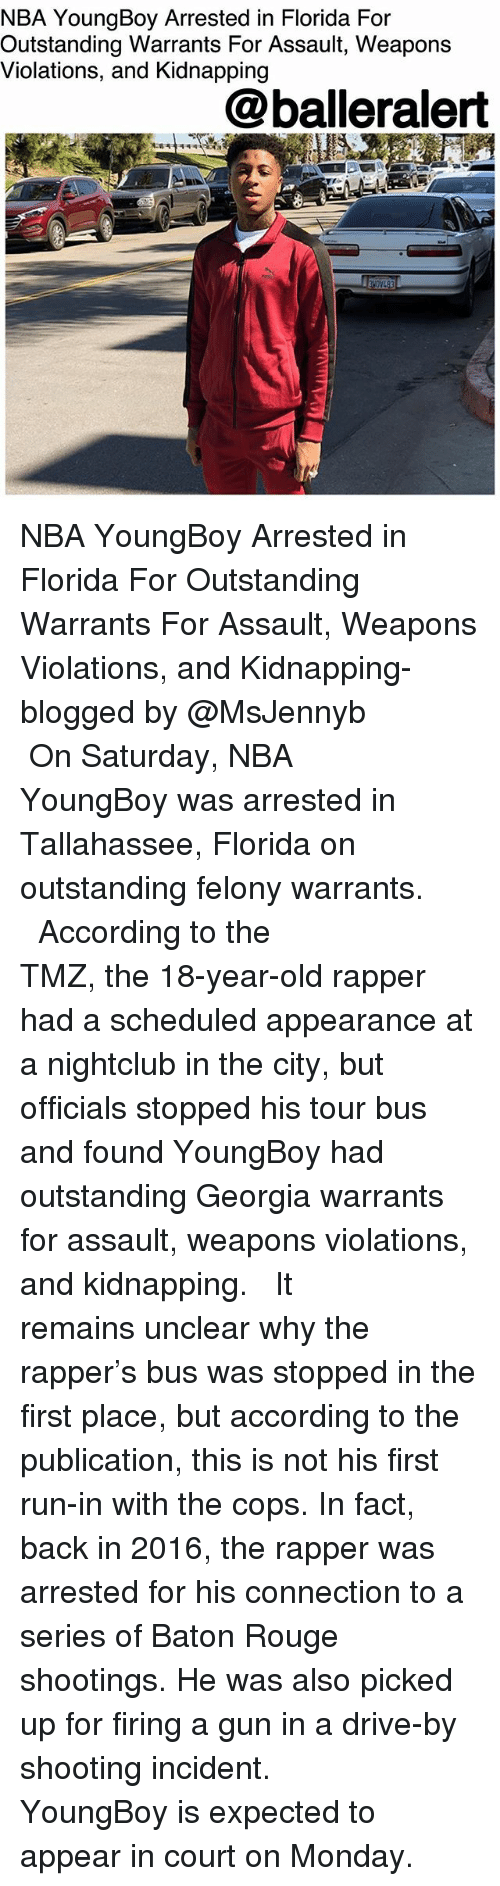 Drive By, Memes, and Nba: NBA YoungBoy Arrested in Florida For  Outstanding Warrants For Assault, Weapons  Violations, and Kidnapping  @balleralert NBA YoungBoy Arrested in Florida For Outstanding Warrants For Assault, Weapons Violations, and Kidnapping- blogged by @MsJennyb ⠀⠀⠀⠀⠀⠀⠀ ⠀⠀⠀⠀⠀⠀⠀ On Saturday, NBA YoungBoy was arrested in Tallahassee, Florida on outstanding felony warrants. ⠀⠀⠀⠀⠀⠀⠀ ⠀⠀⠀⠀⠀⠀⠀ According to the TMZ, the 18-year-old rapper had a scheduled appearance at a nightclub in the city, but officials stopped his tour bus and found YoungBoy had outstanding Georgia warrants for assault, weapons violations, and kidnapping. ⠀⠀⠀⠀⠀⠀⠀ ⠀⠀⠀⠀⠀⠀⠀ It remains unclear why the rapper's bus was stopped in the first place, but according to the publication, this is not his first run-in with the cops. In fact, back in 2016, the rapper was arrested for his connection to a series of Baton Rouge shootings. He was also picked up for firing a gun in a drive-by shooting incident. ⠀⠀⠀⠀⠀⠀⠀ ⠀⠀⠀⠀⠀⠀⠀ YoungBoy is expected to appear in court on Monday.